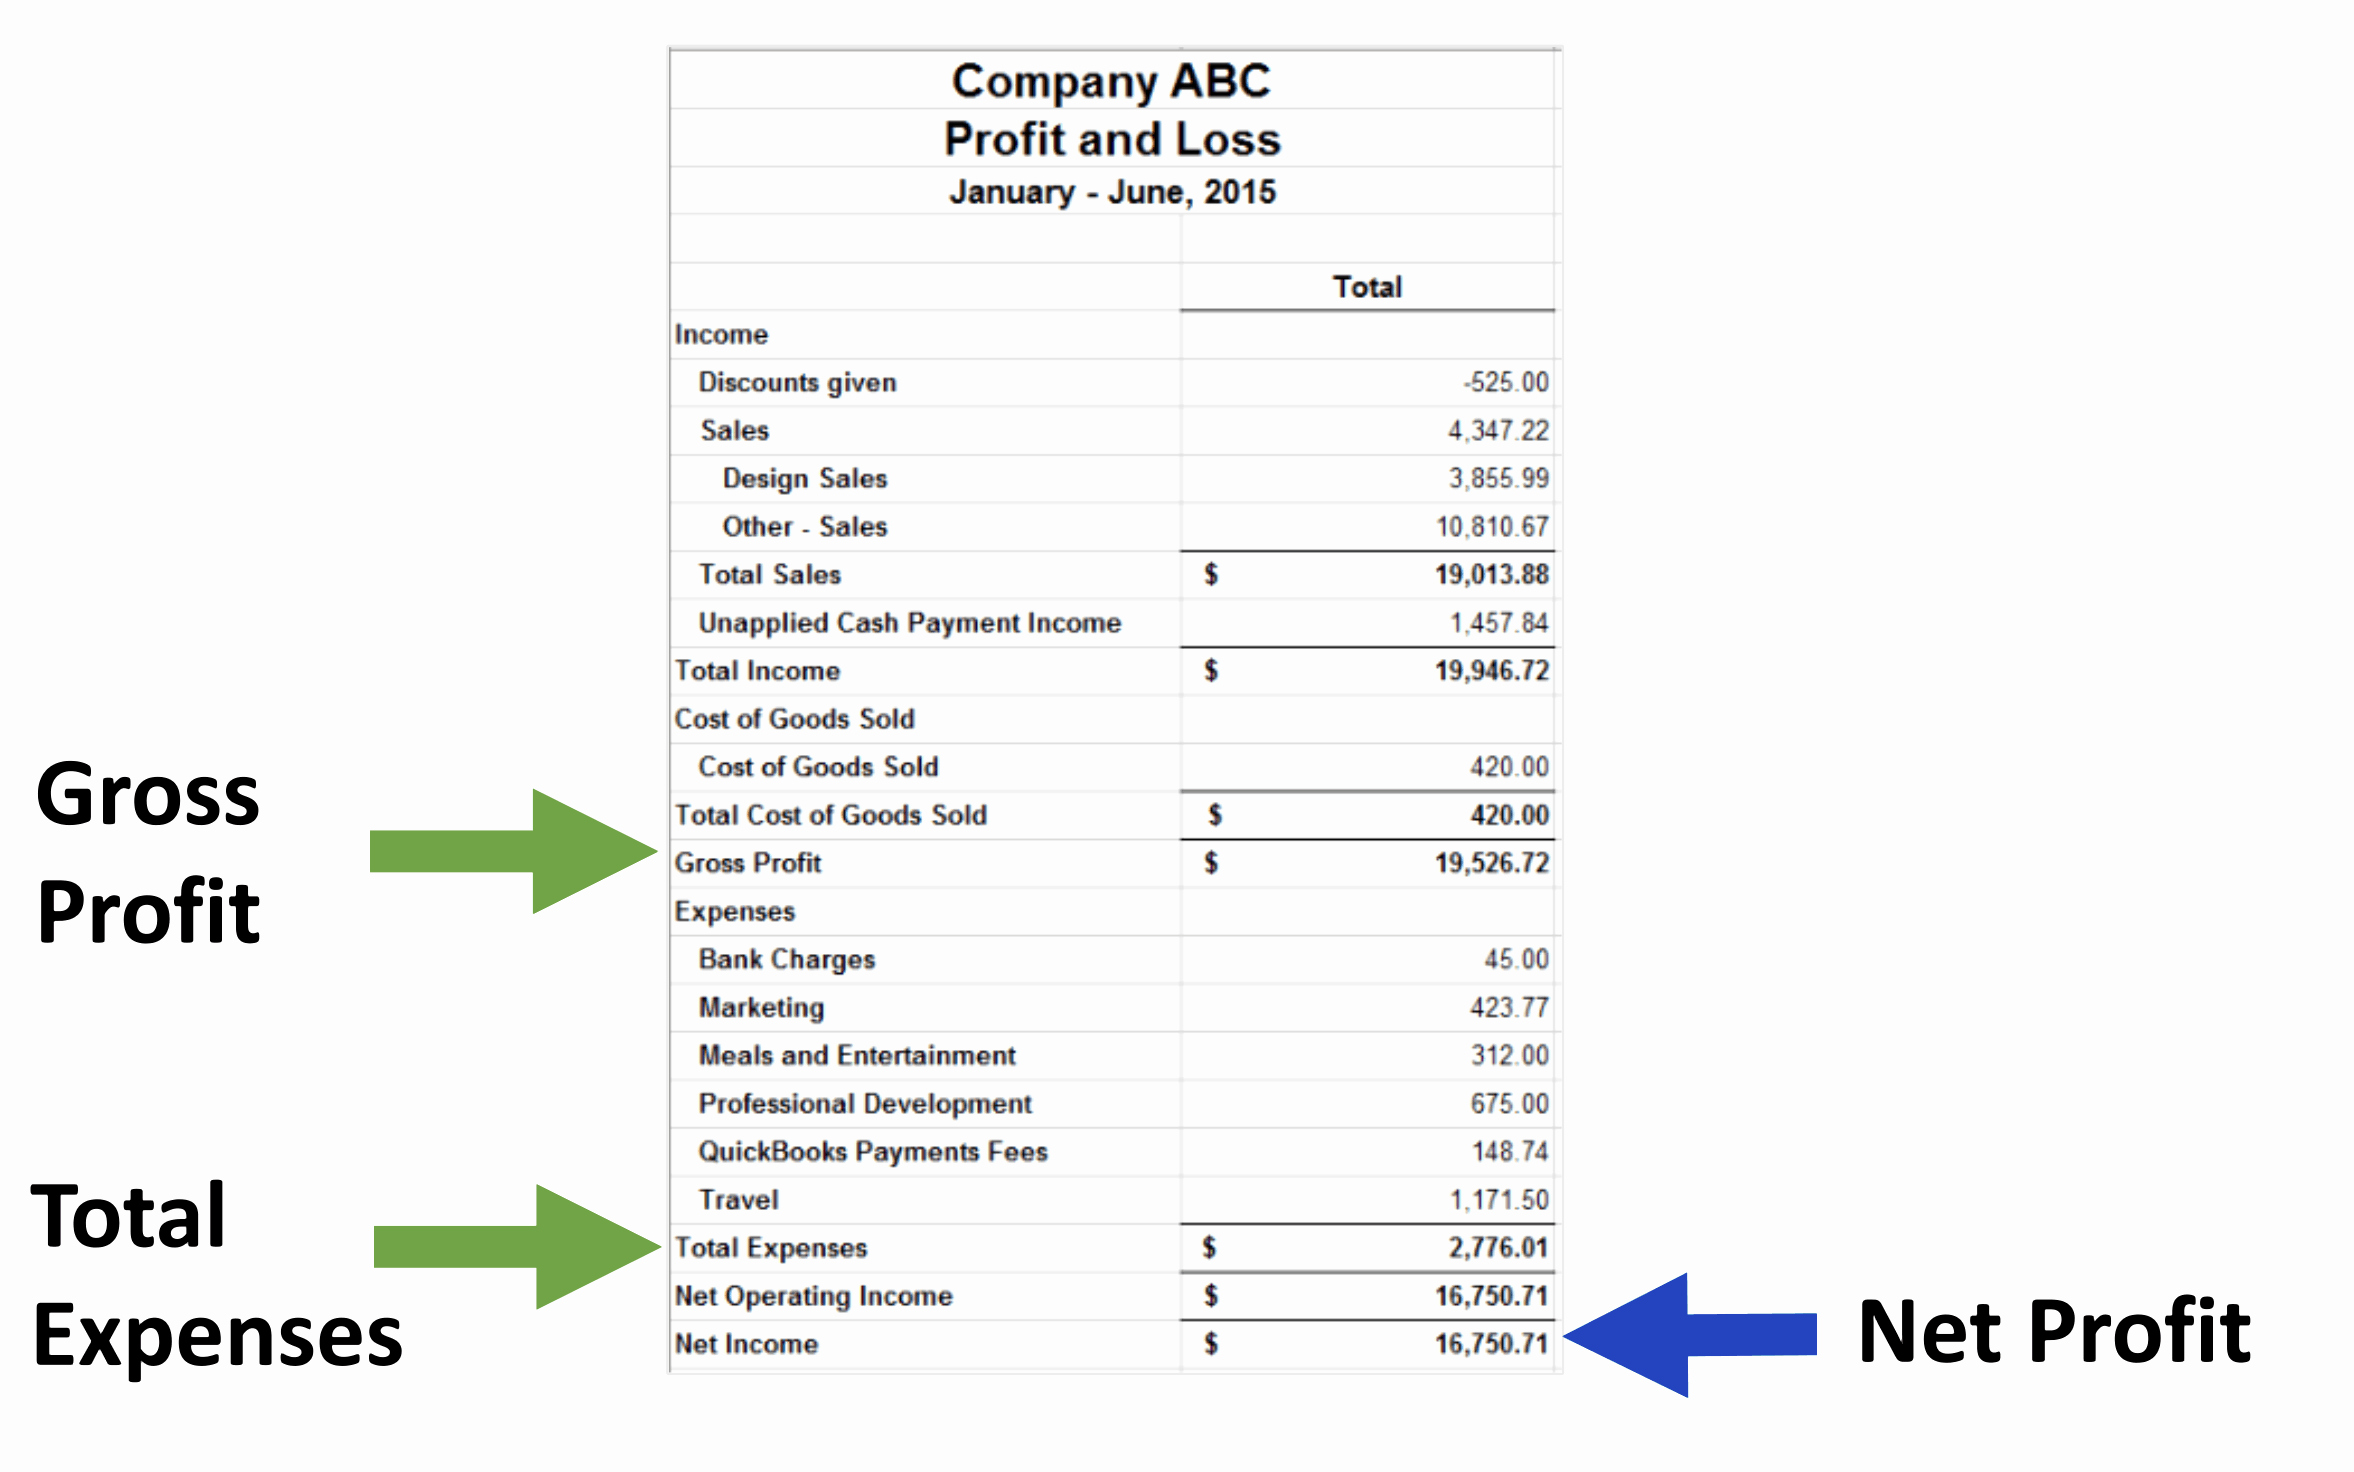 Profit Loss Statement Example Luxury How to Read A Profit and Loss Statement Smi Financial